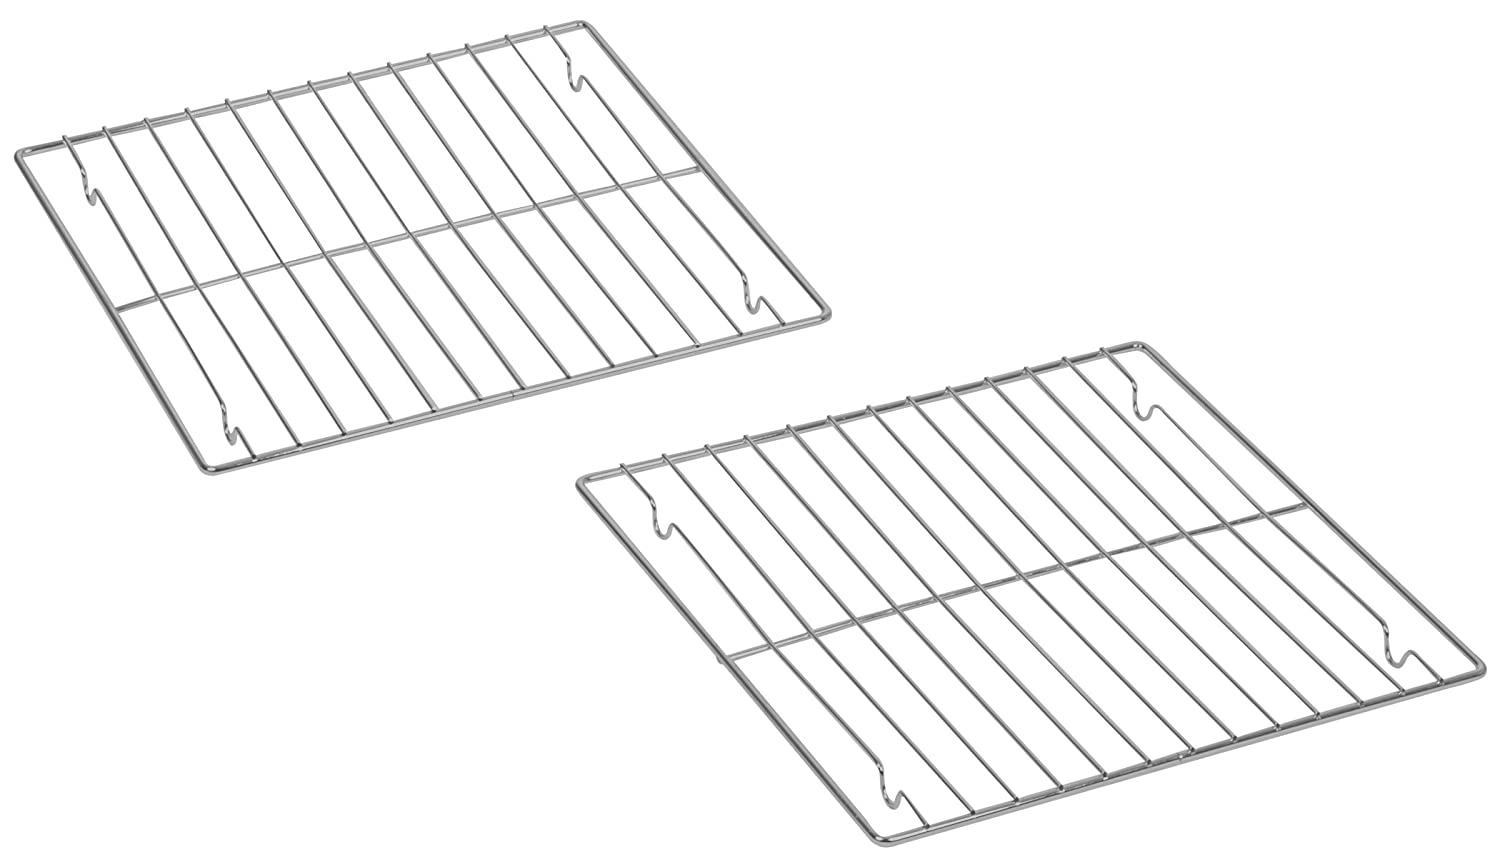 Ekco Cooling Rack, Set of 2